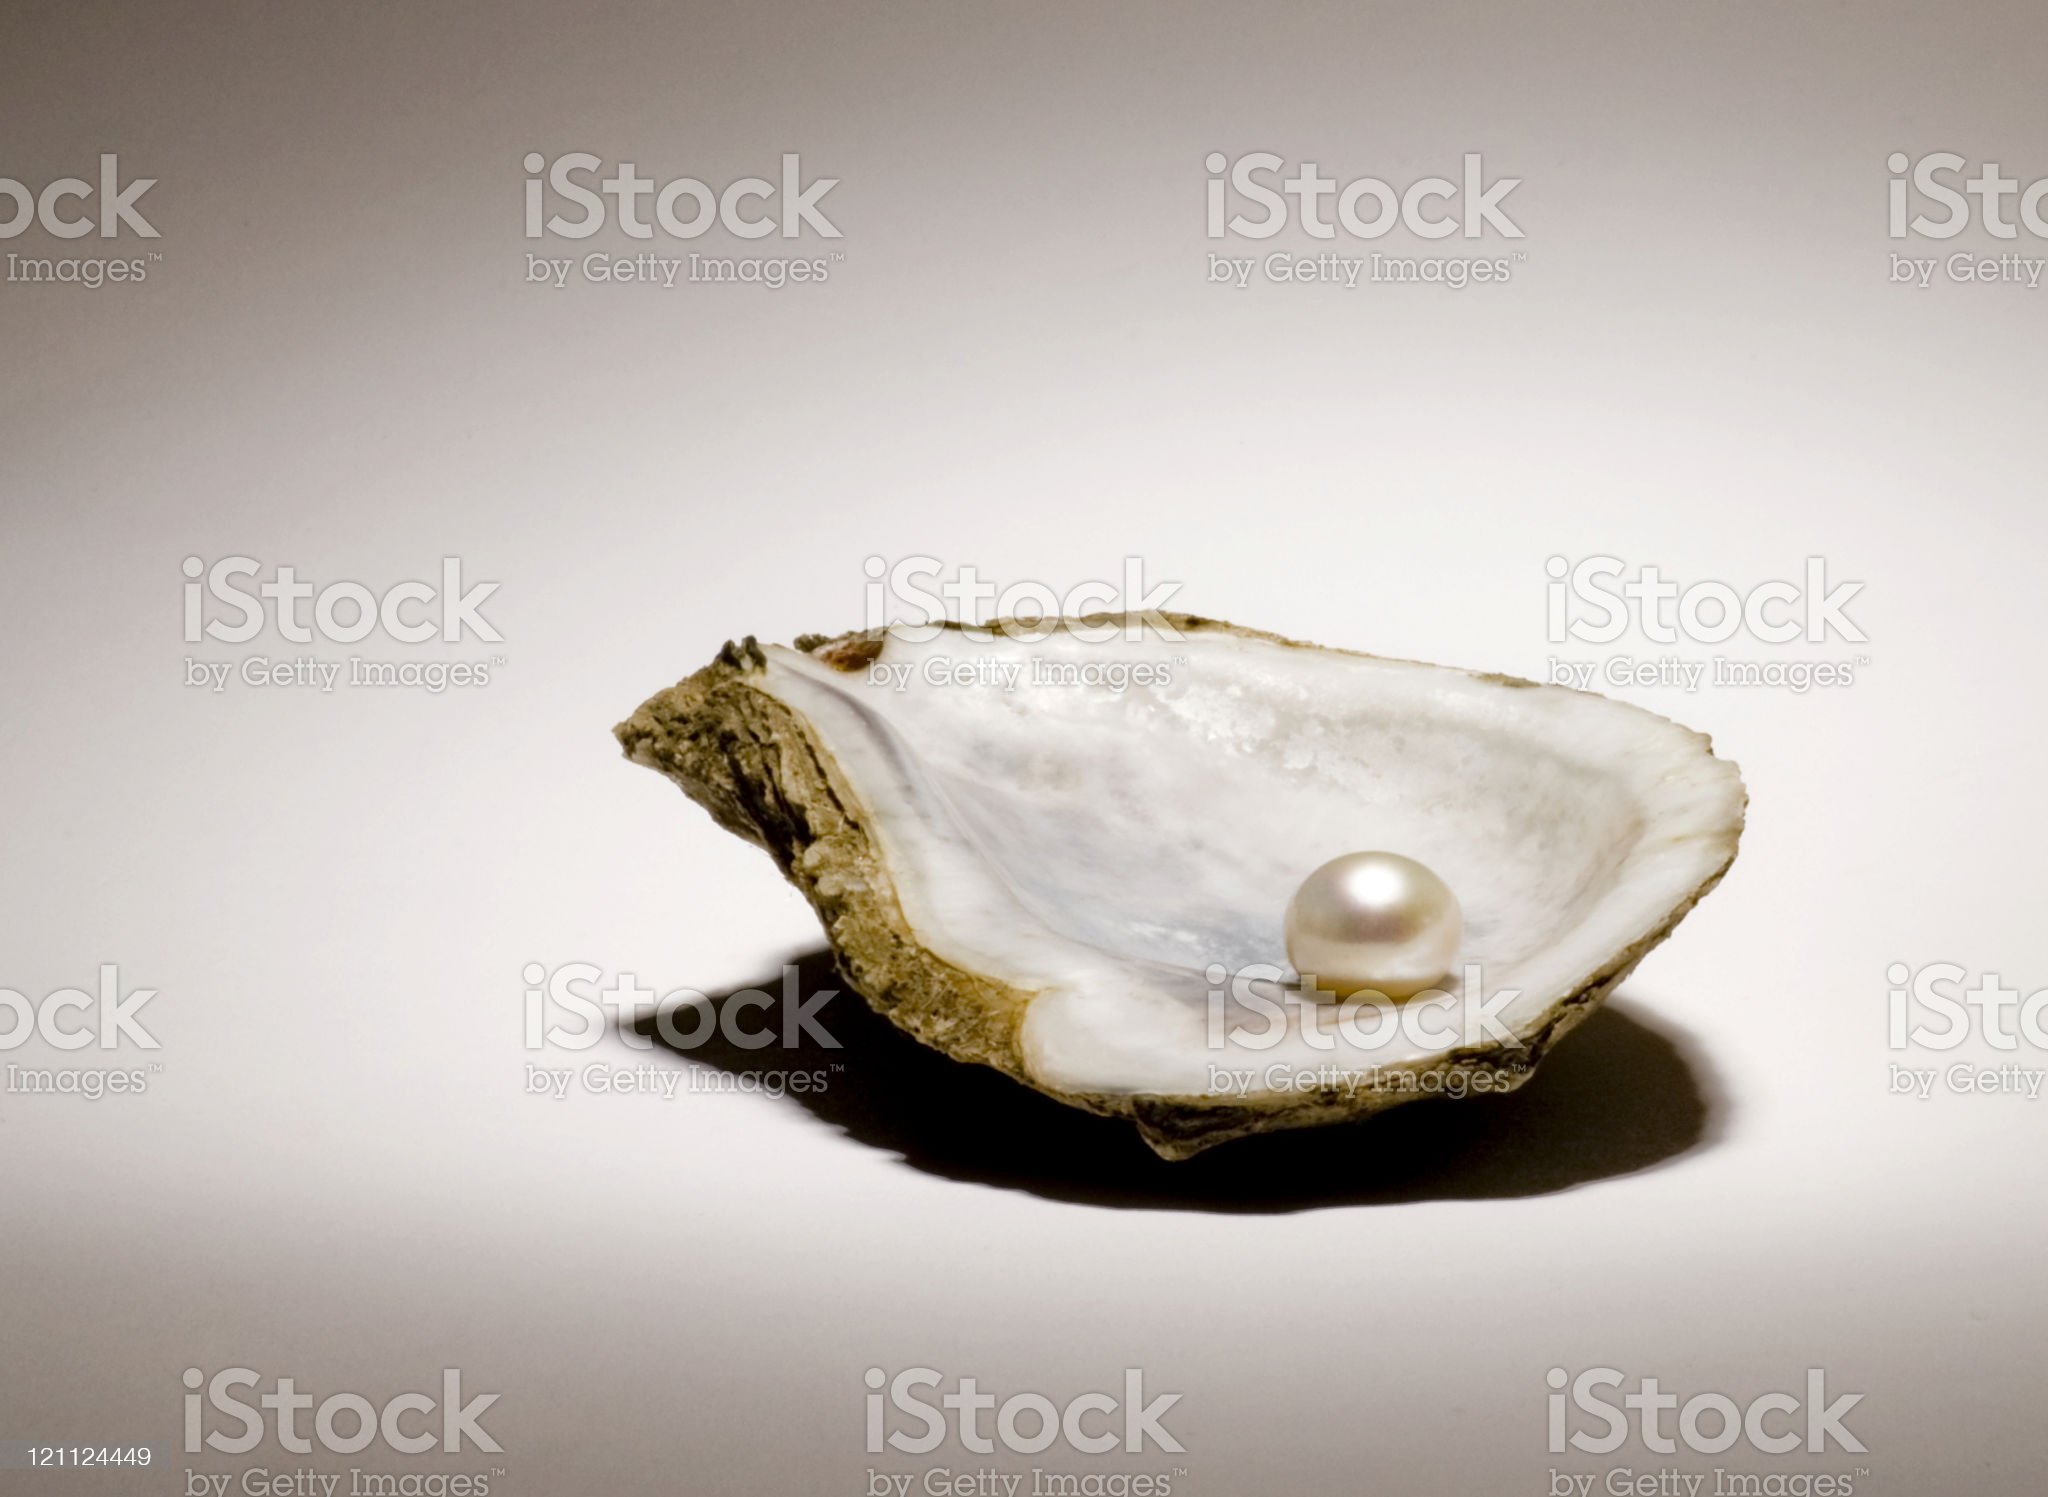 Singe pearl sitting in an oyster shell on a light background royalty-free stock photo